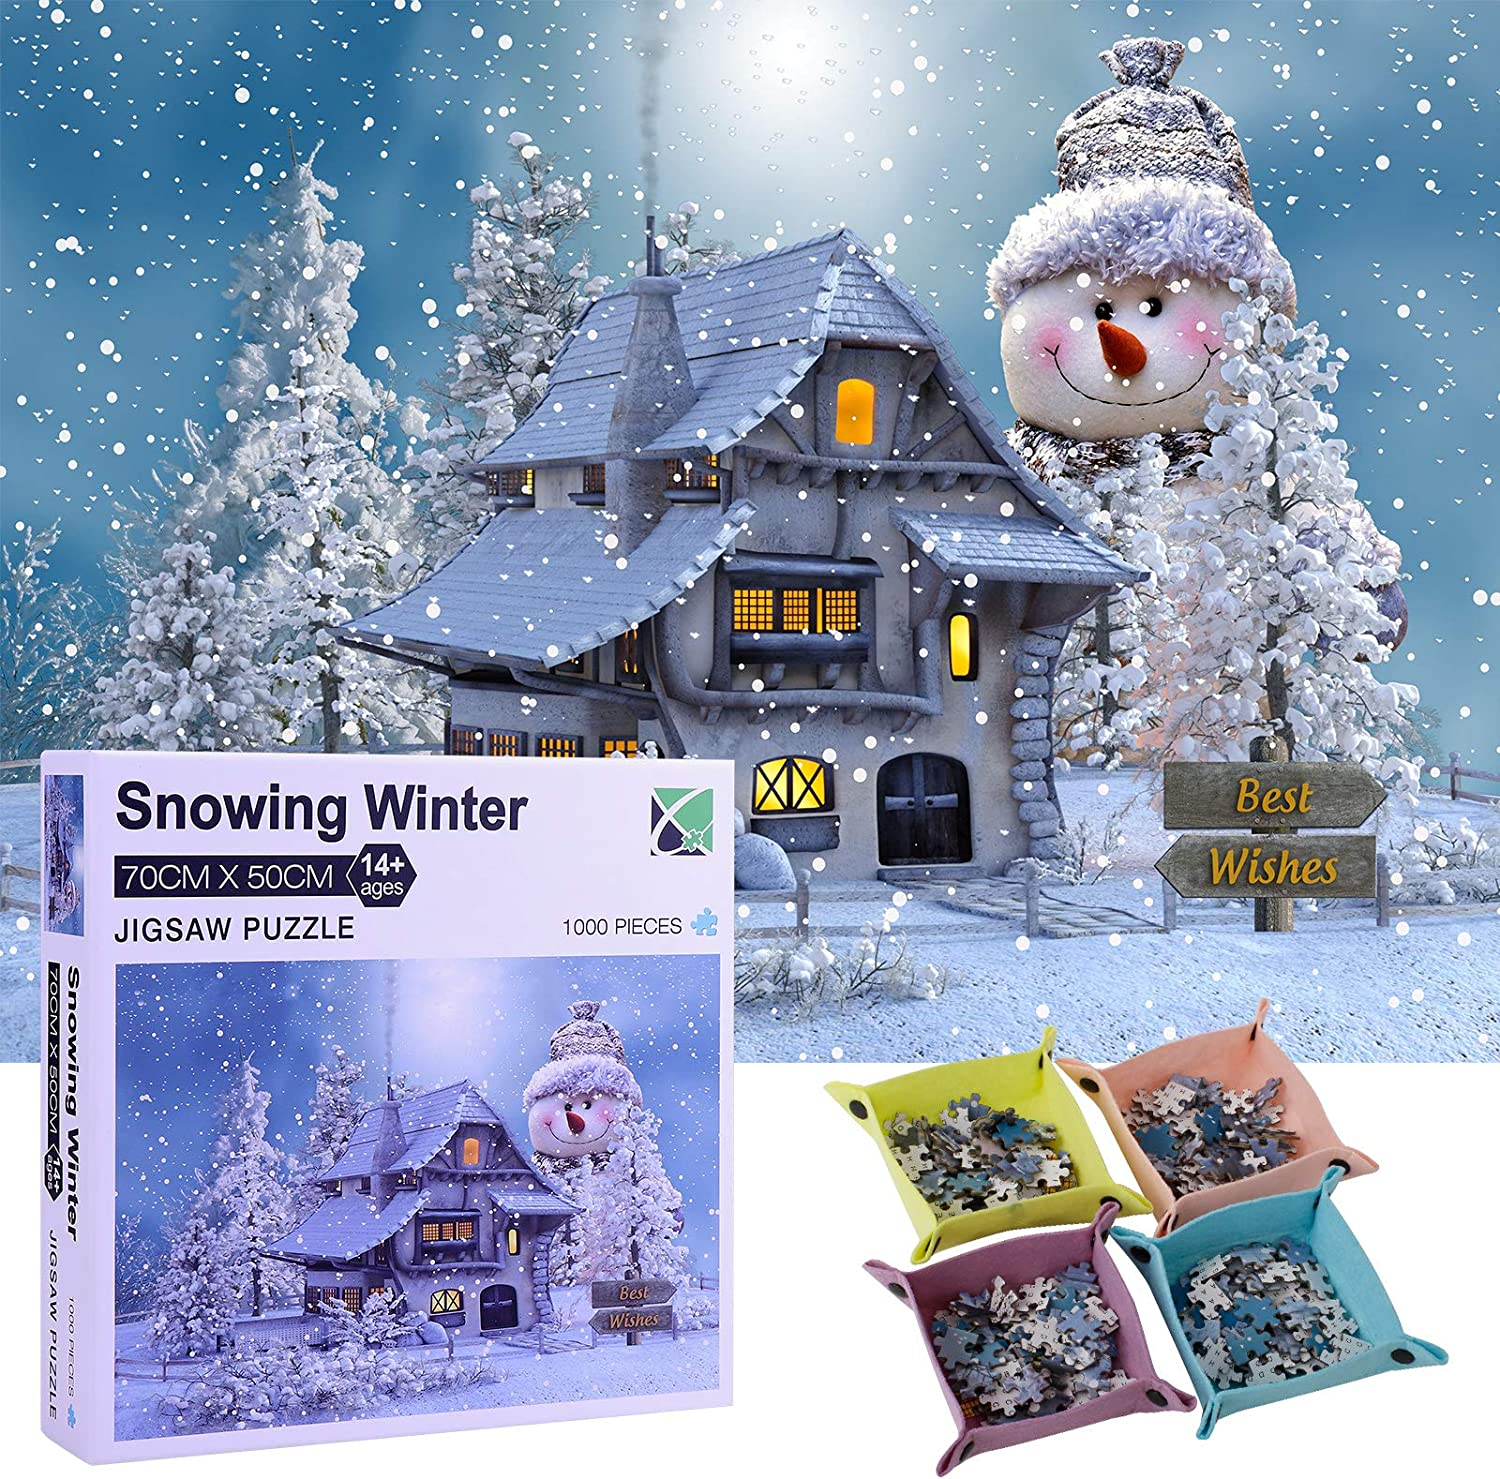 Home Isolation Challenge Jigsaw Puzzles 1000-Piece for Kids & Adults Snowing Puzzle Every Piece is Unique Puzzle with Letters On Back The Pieces Fit Together Perfectly with Four Storage Boxes